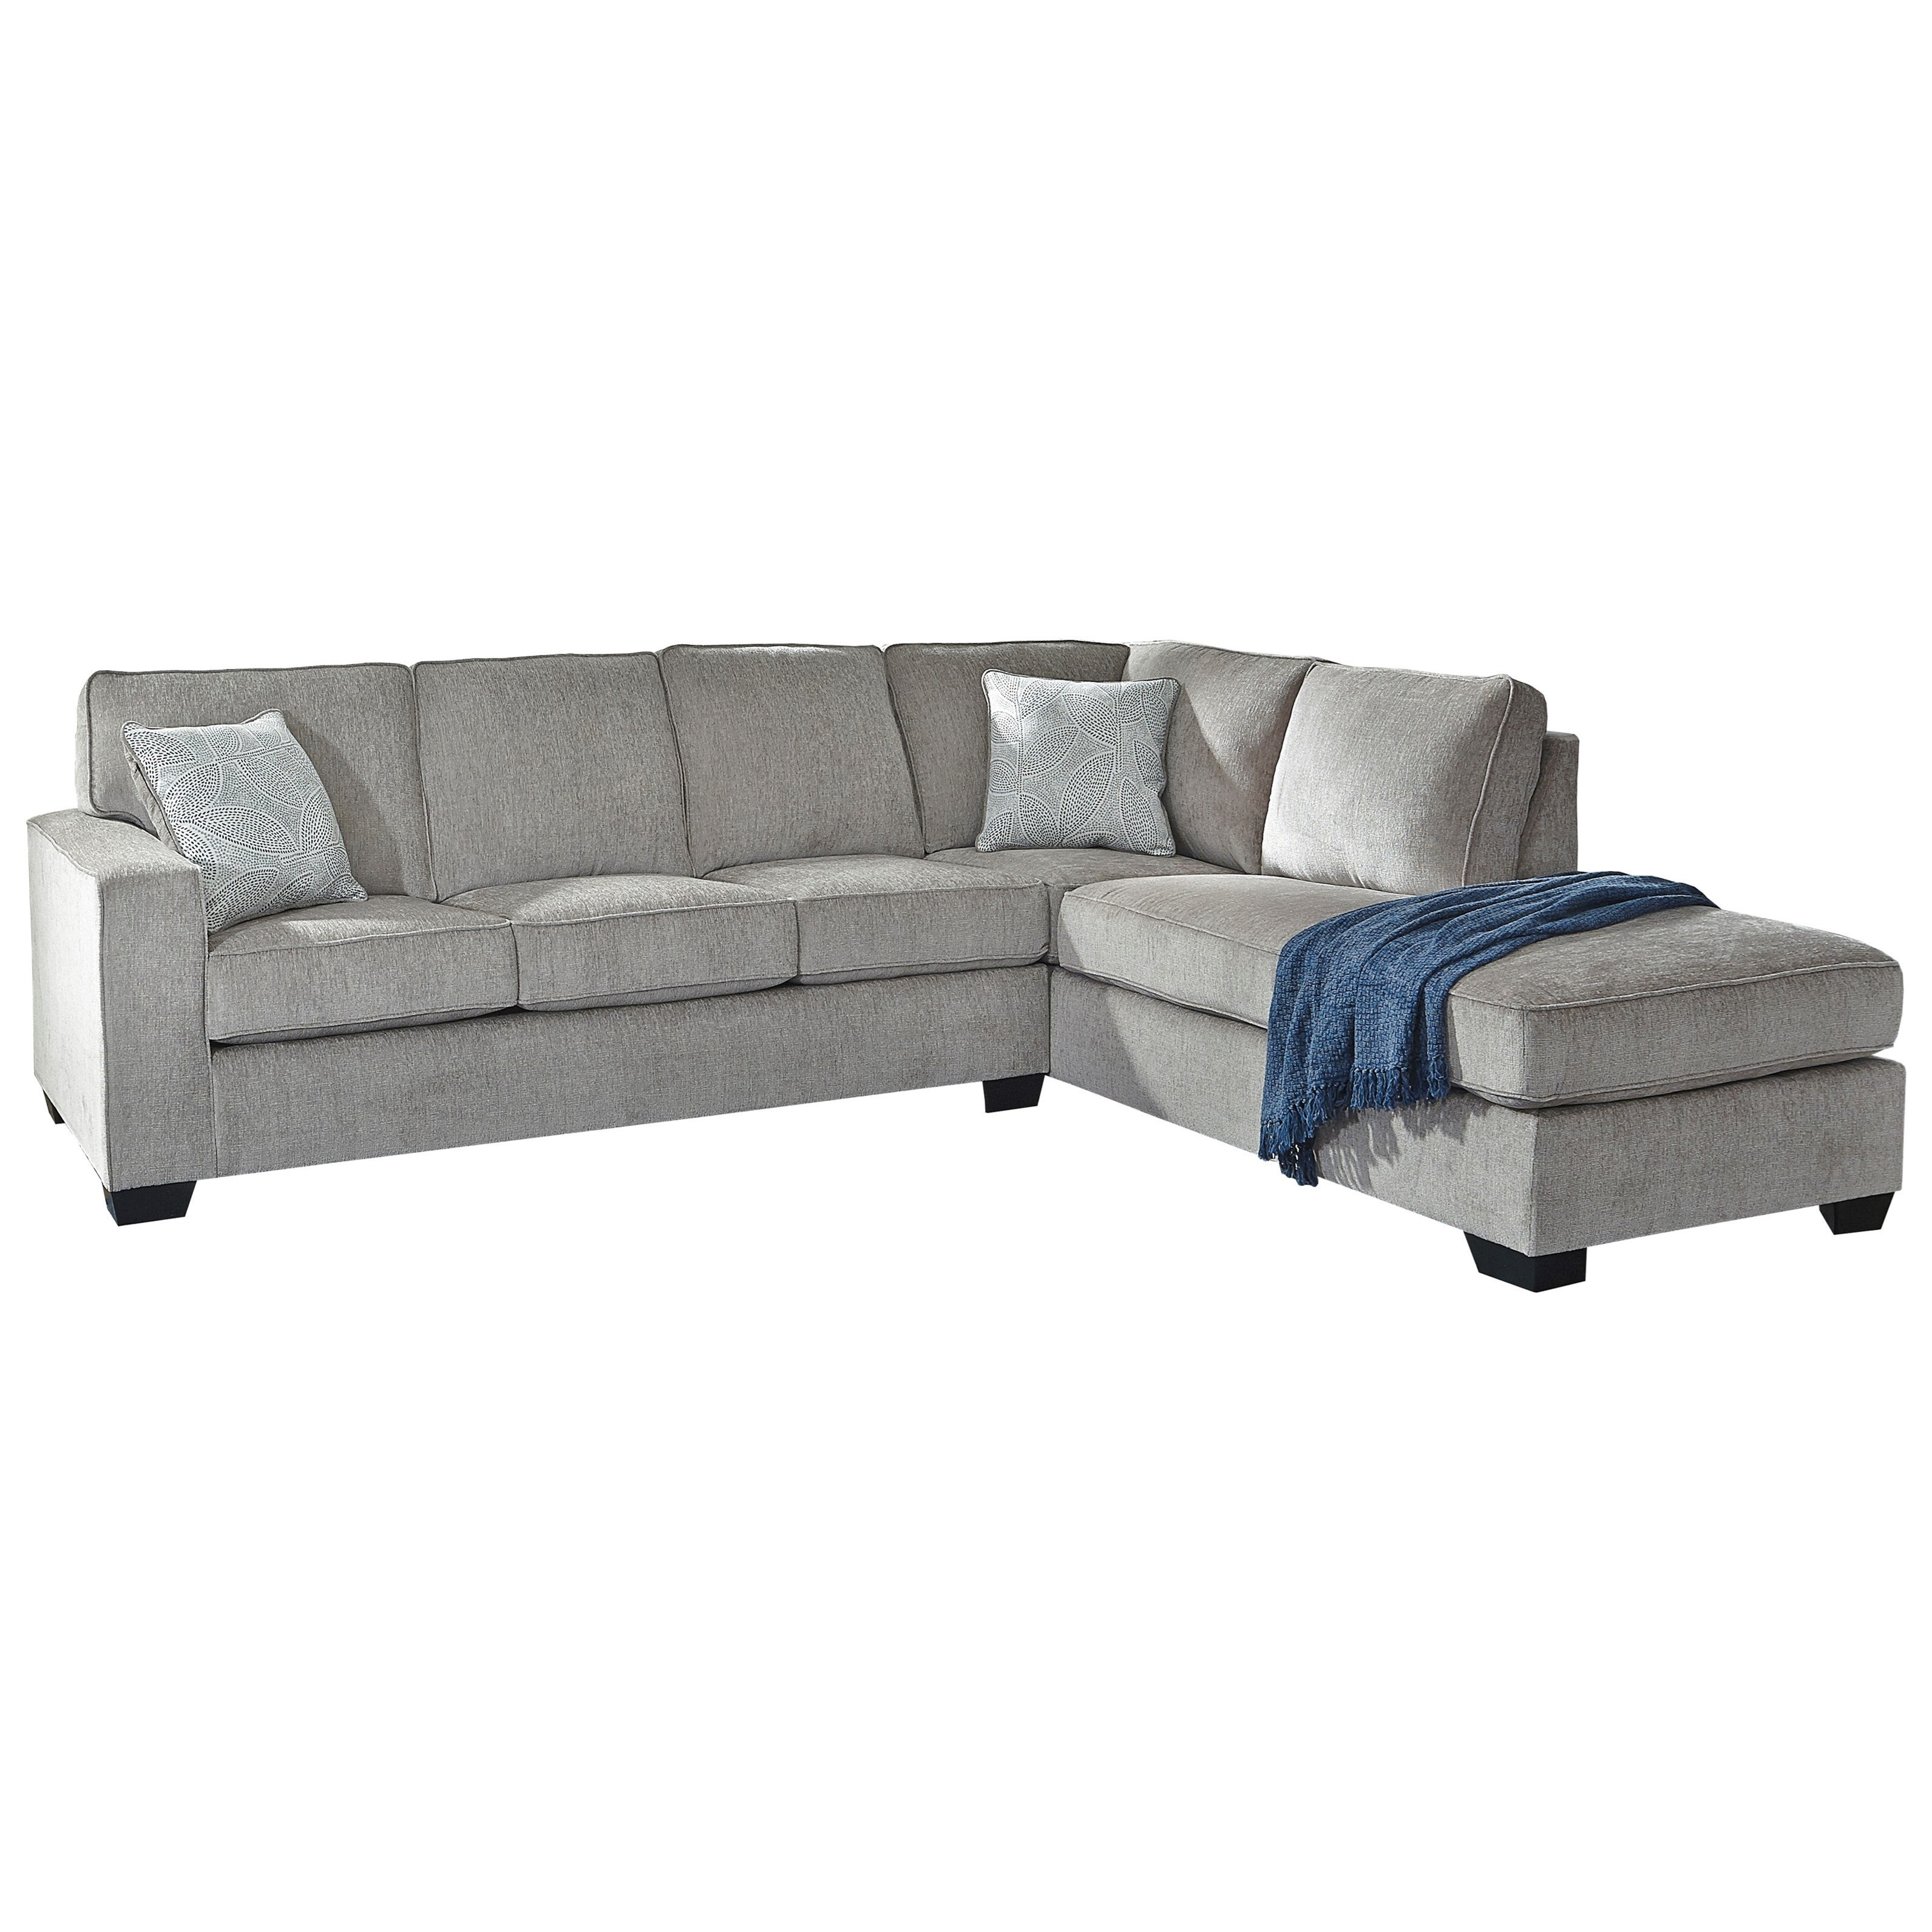 - Vendor 3 Altari Sleeper Sectional With Chaise Becker Furniture